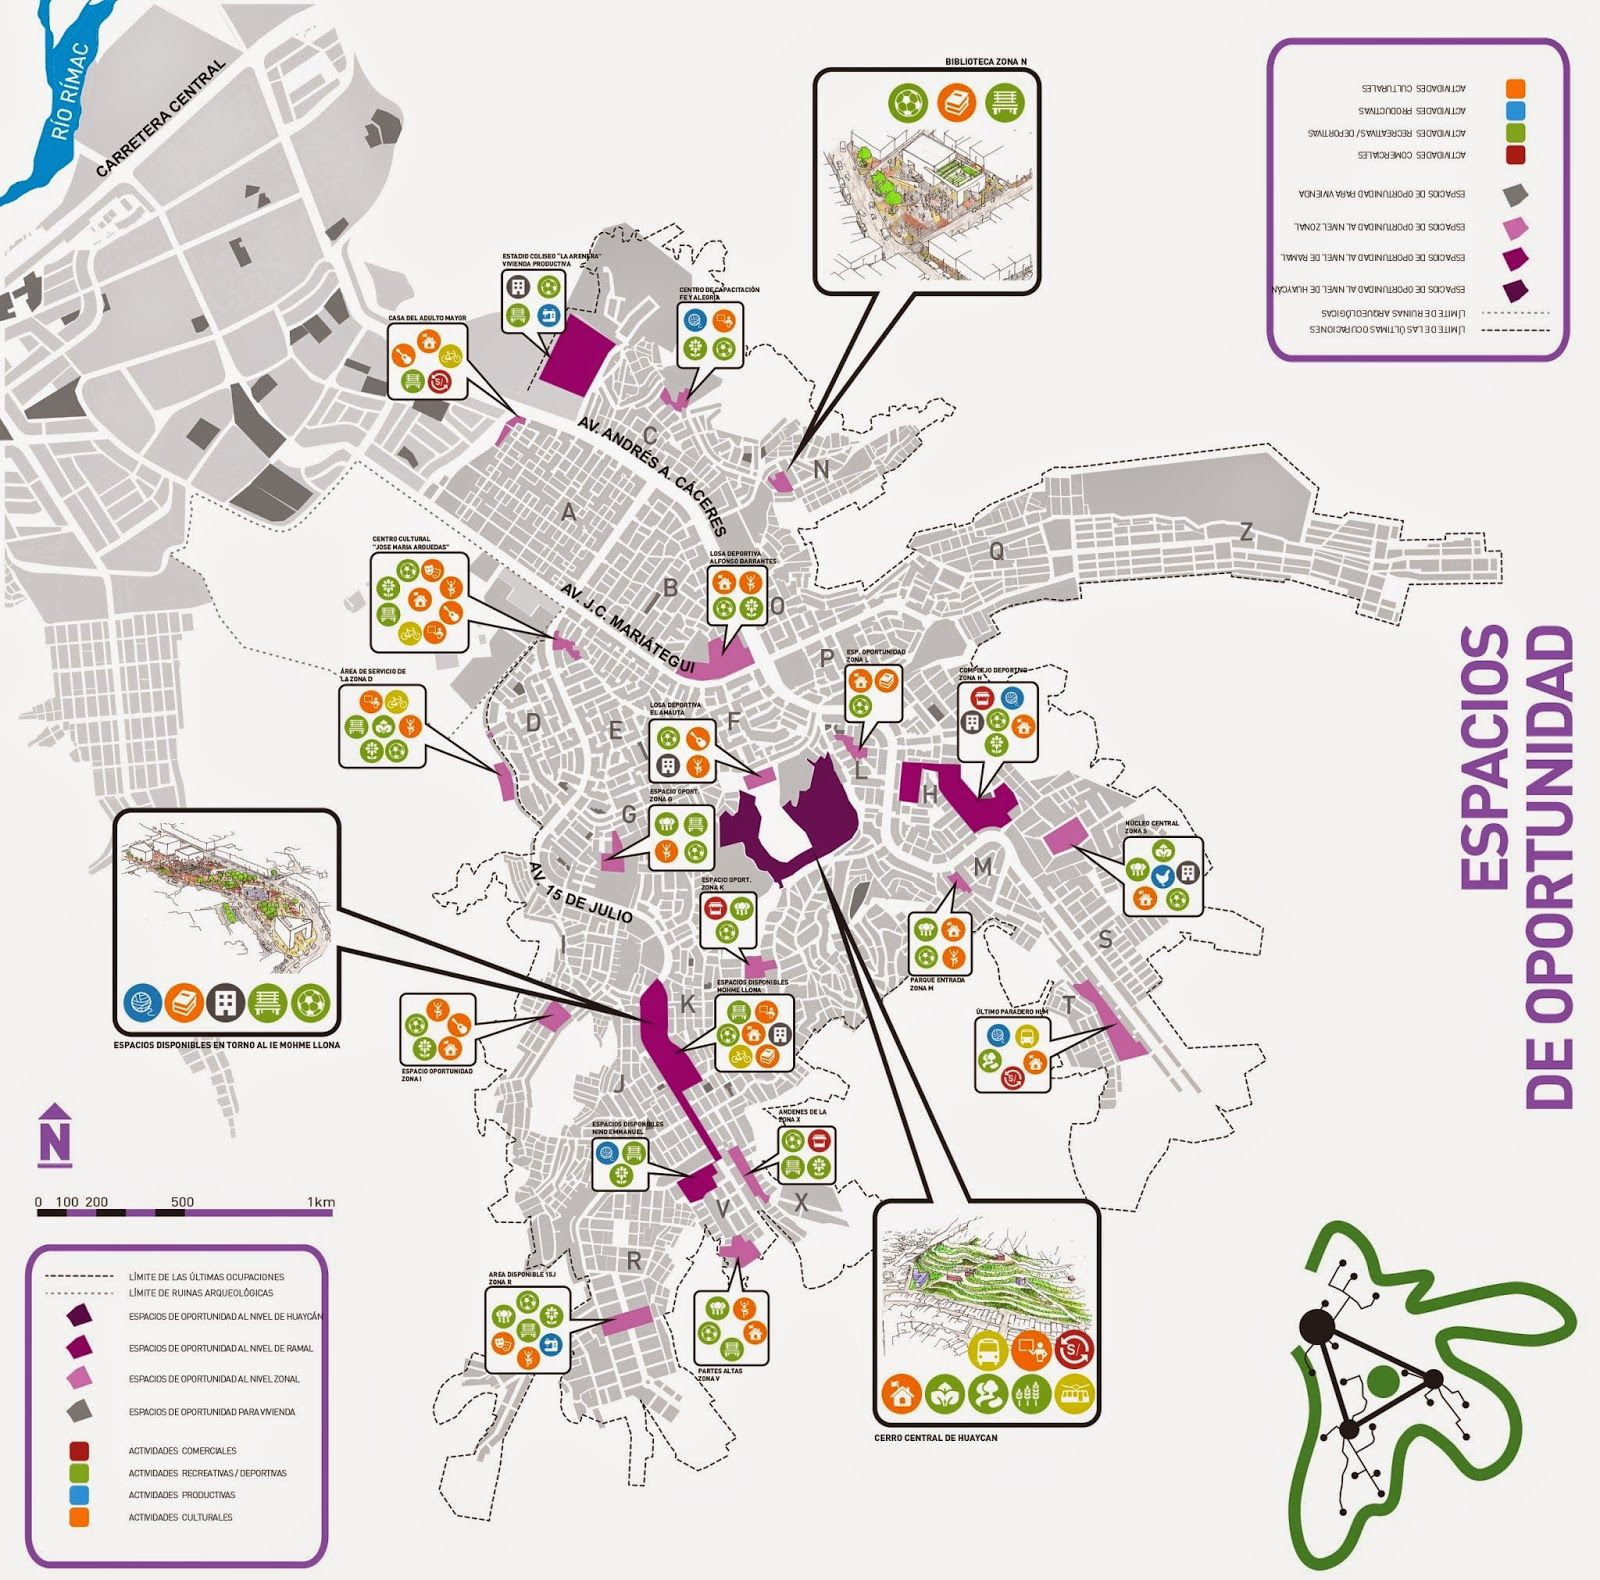 Images Urban Planner In Diagram Tree Template Free Proyectos Urbanos Integrales En Lima Parte Ii Graphic Mapping Master Plan